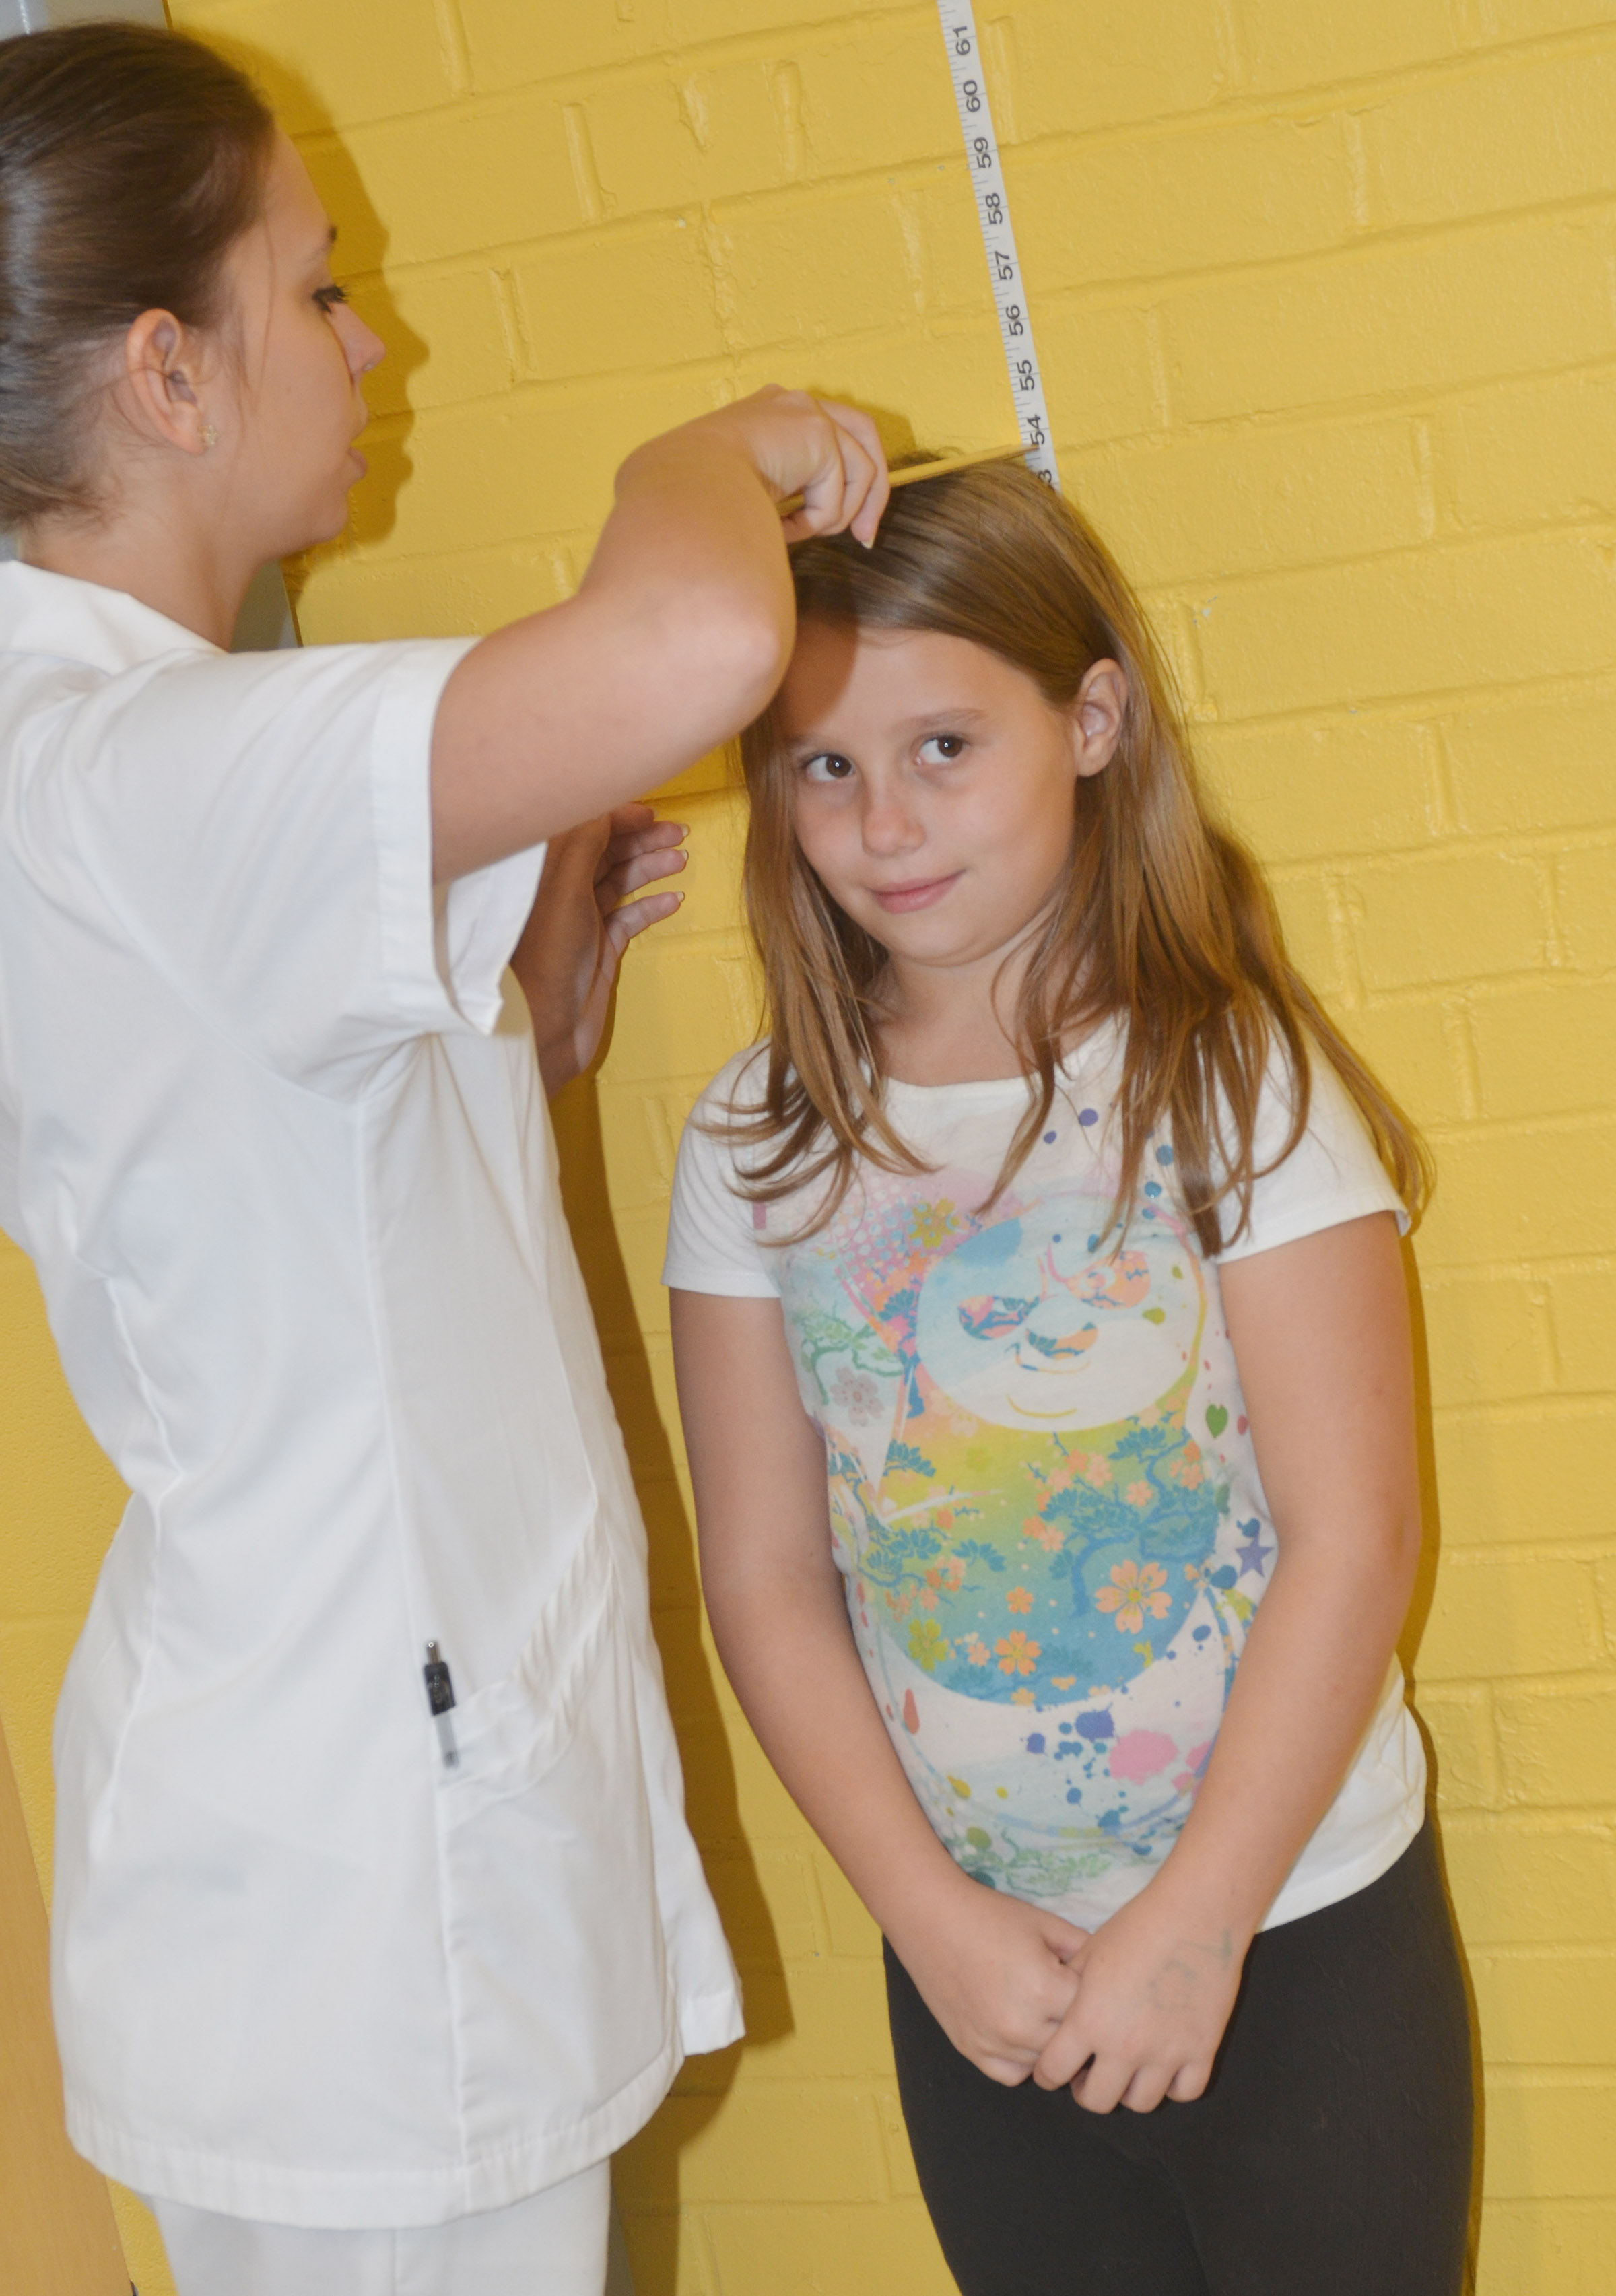 CES fourth-grader McKailynn Grubaugh has her height measured by Campbellsville University nursing student Deanna Chapman.